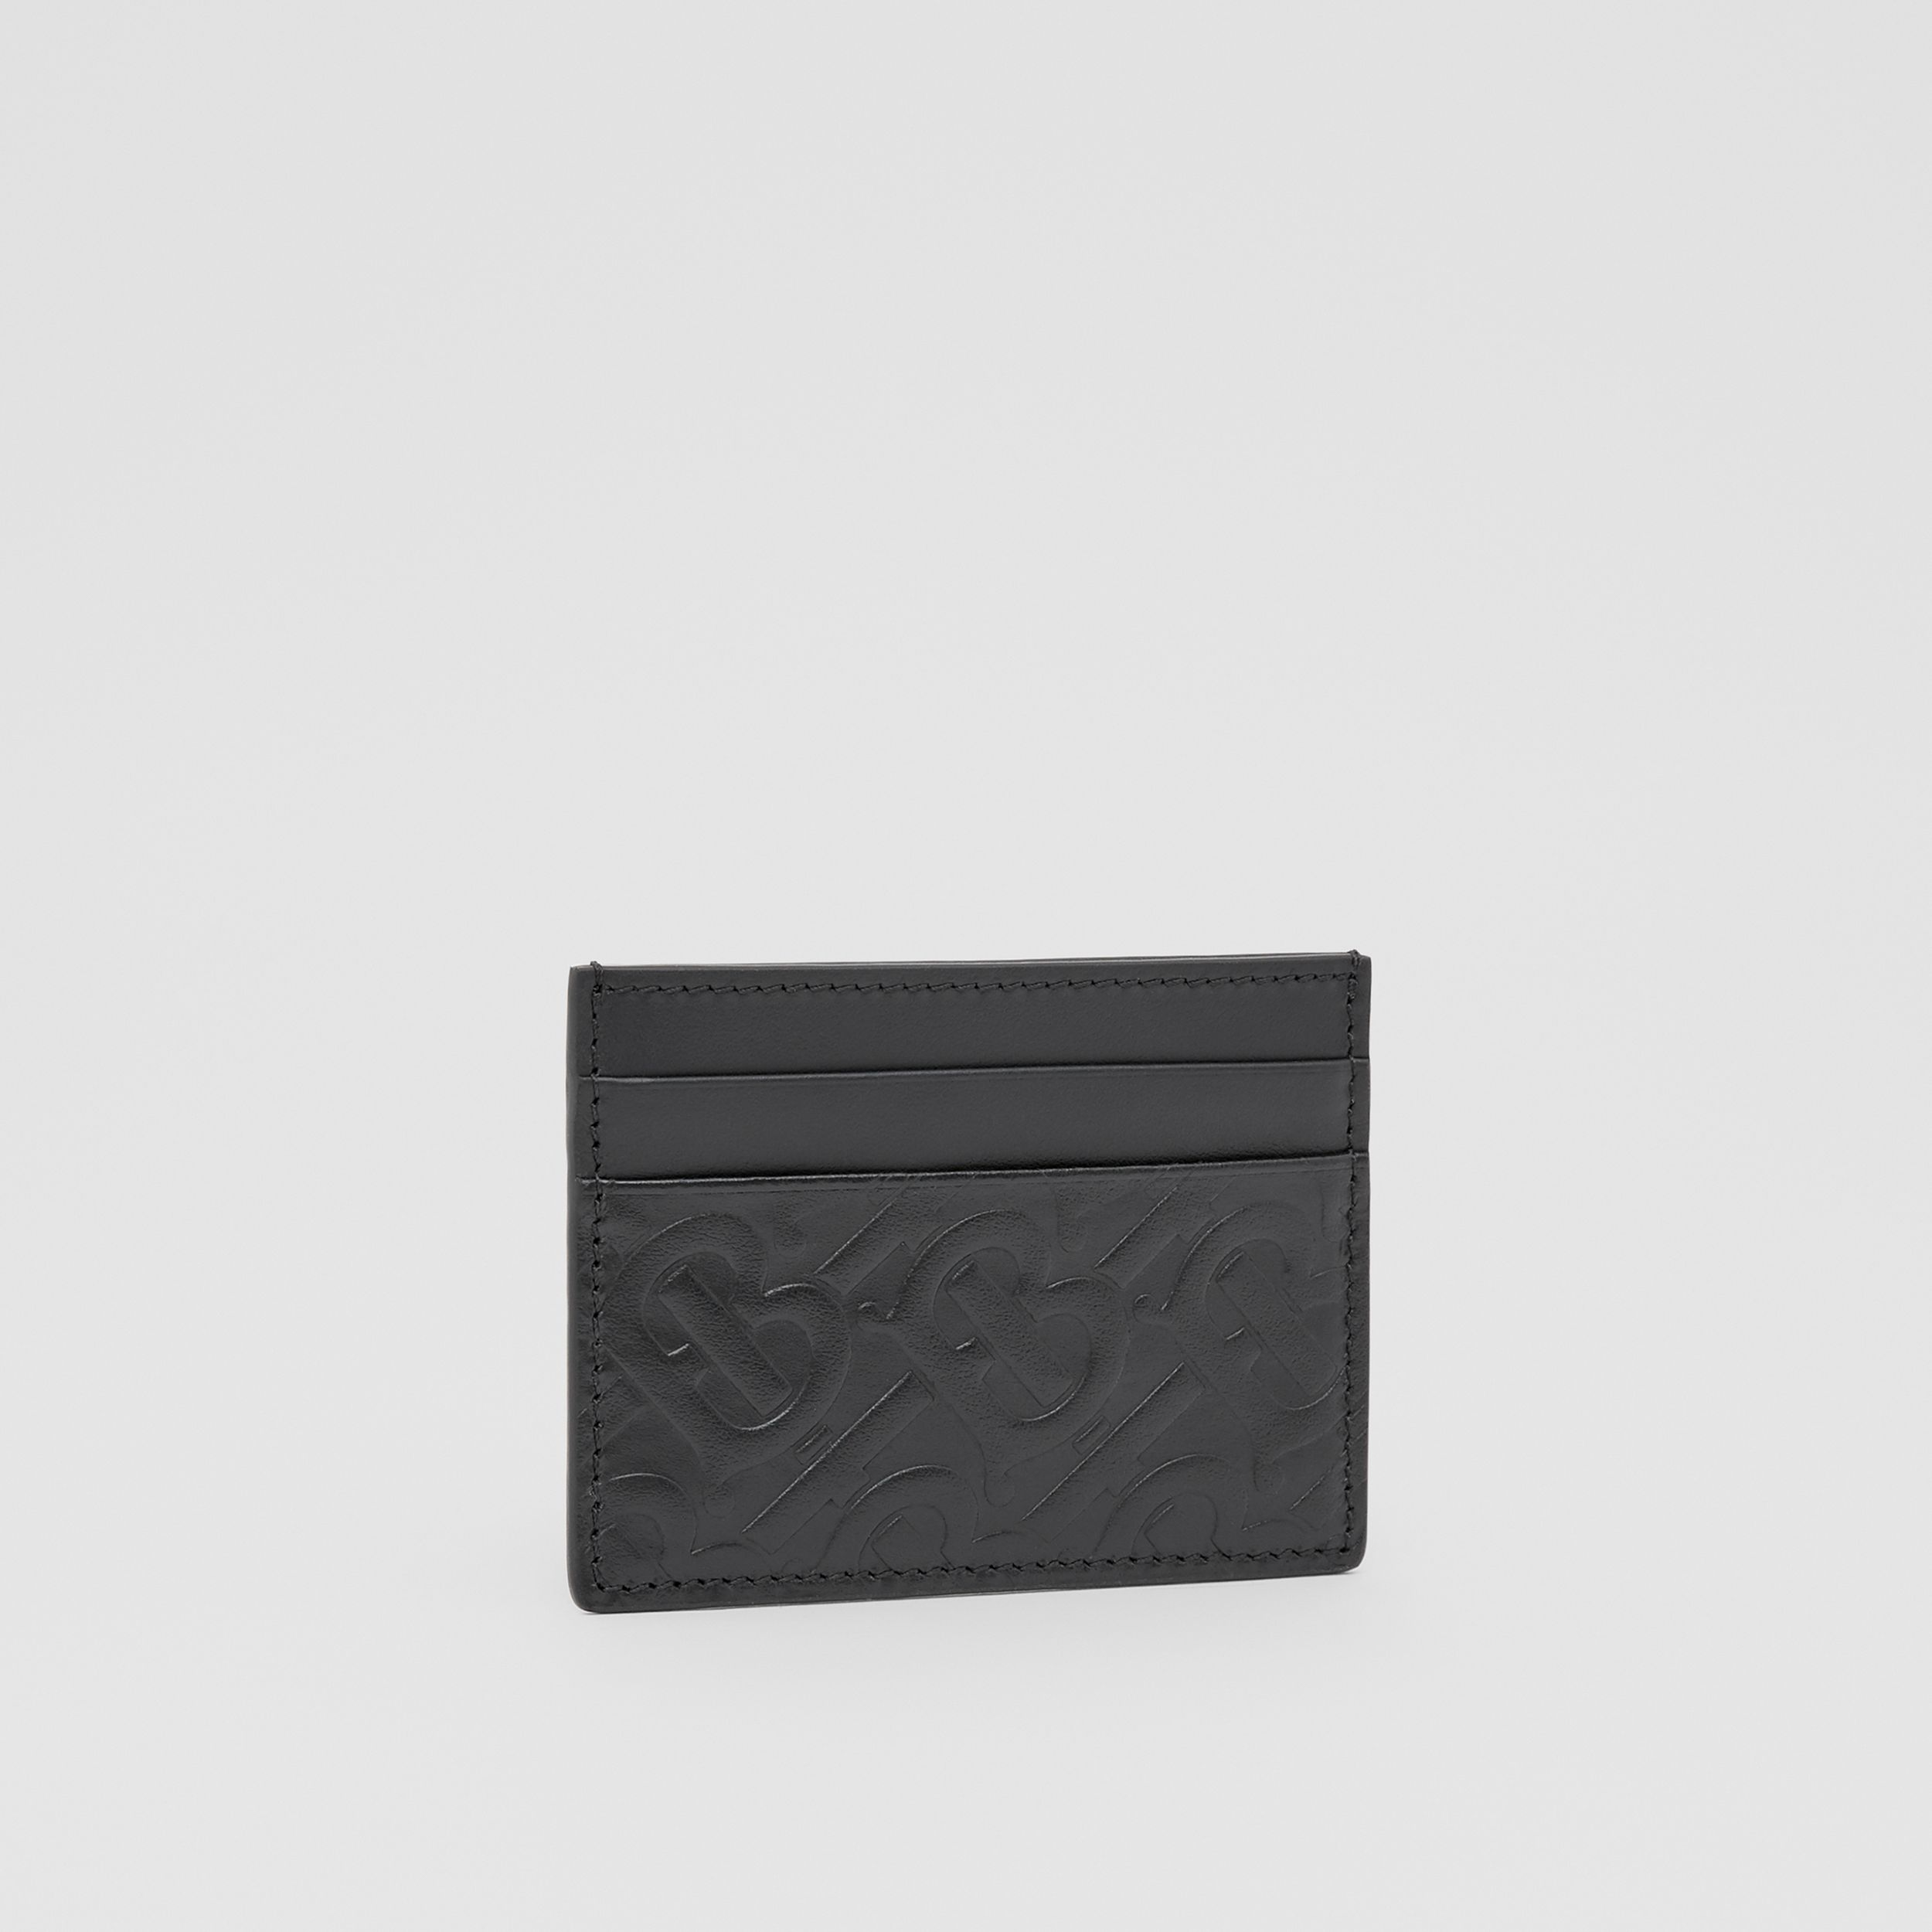 Monogram Leather Card Case in Black | Burberry - 4